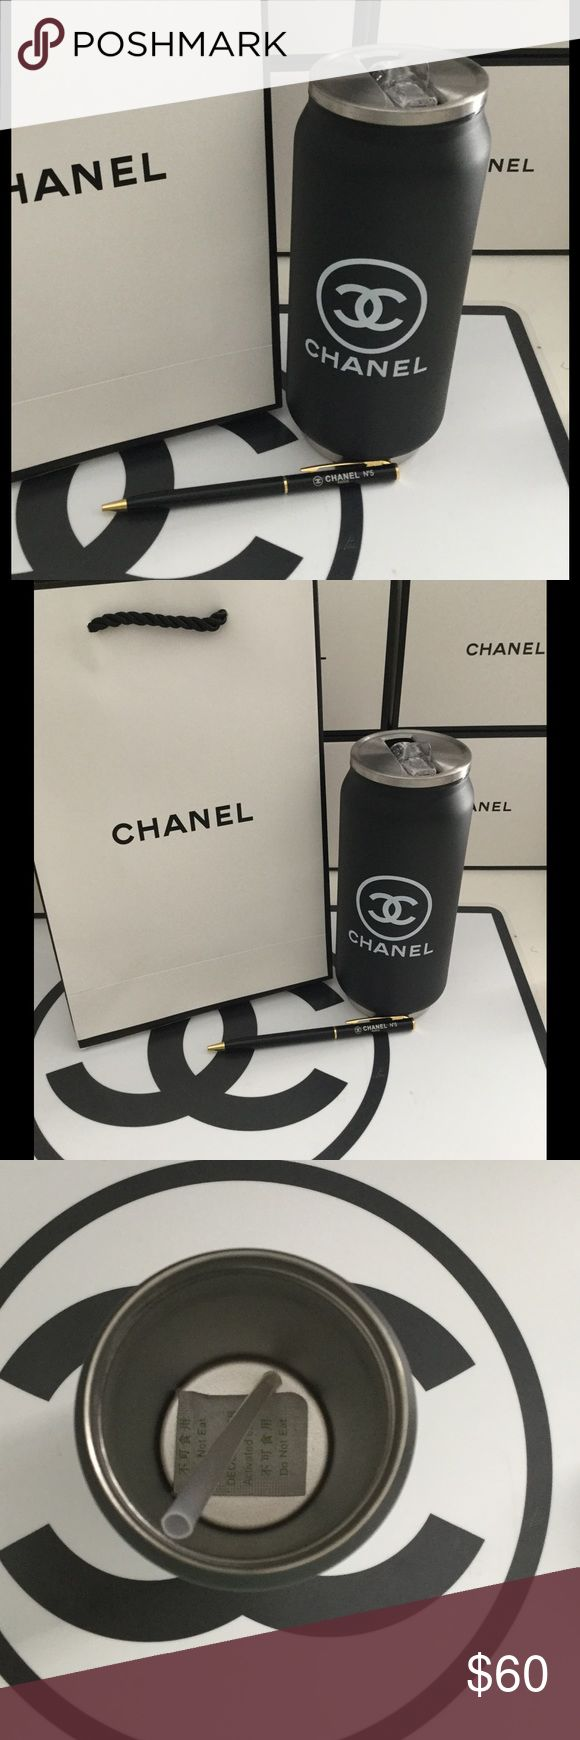 Chanel stainless steel tumbler + 1 Chanel Pen Bundle gift set includes VIP tumbler plus one Chanel pen! Chanel gift bag not included, sorry. No box. Holds 500 ml CHANEL Accessories